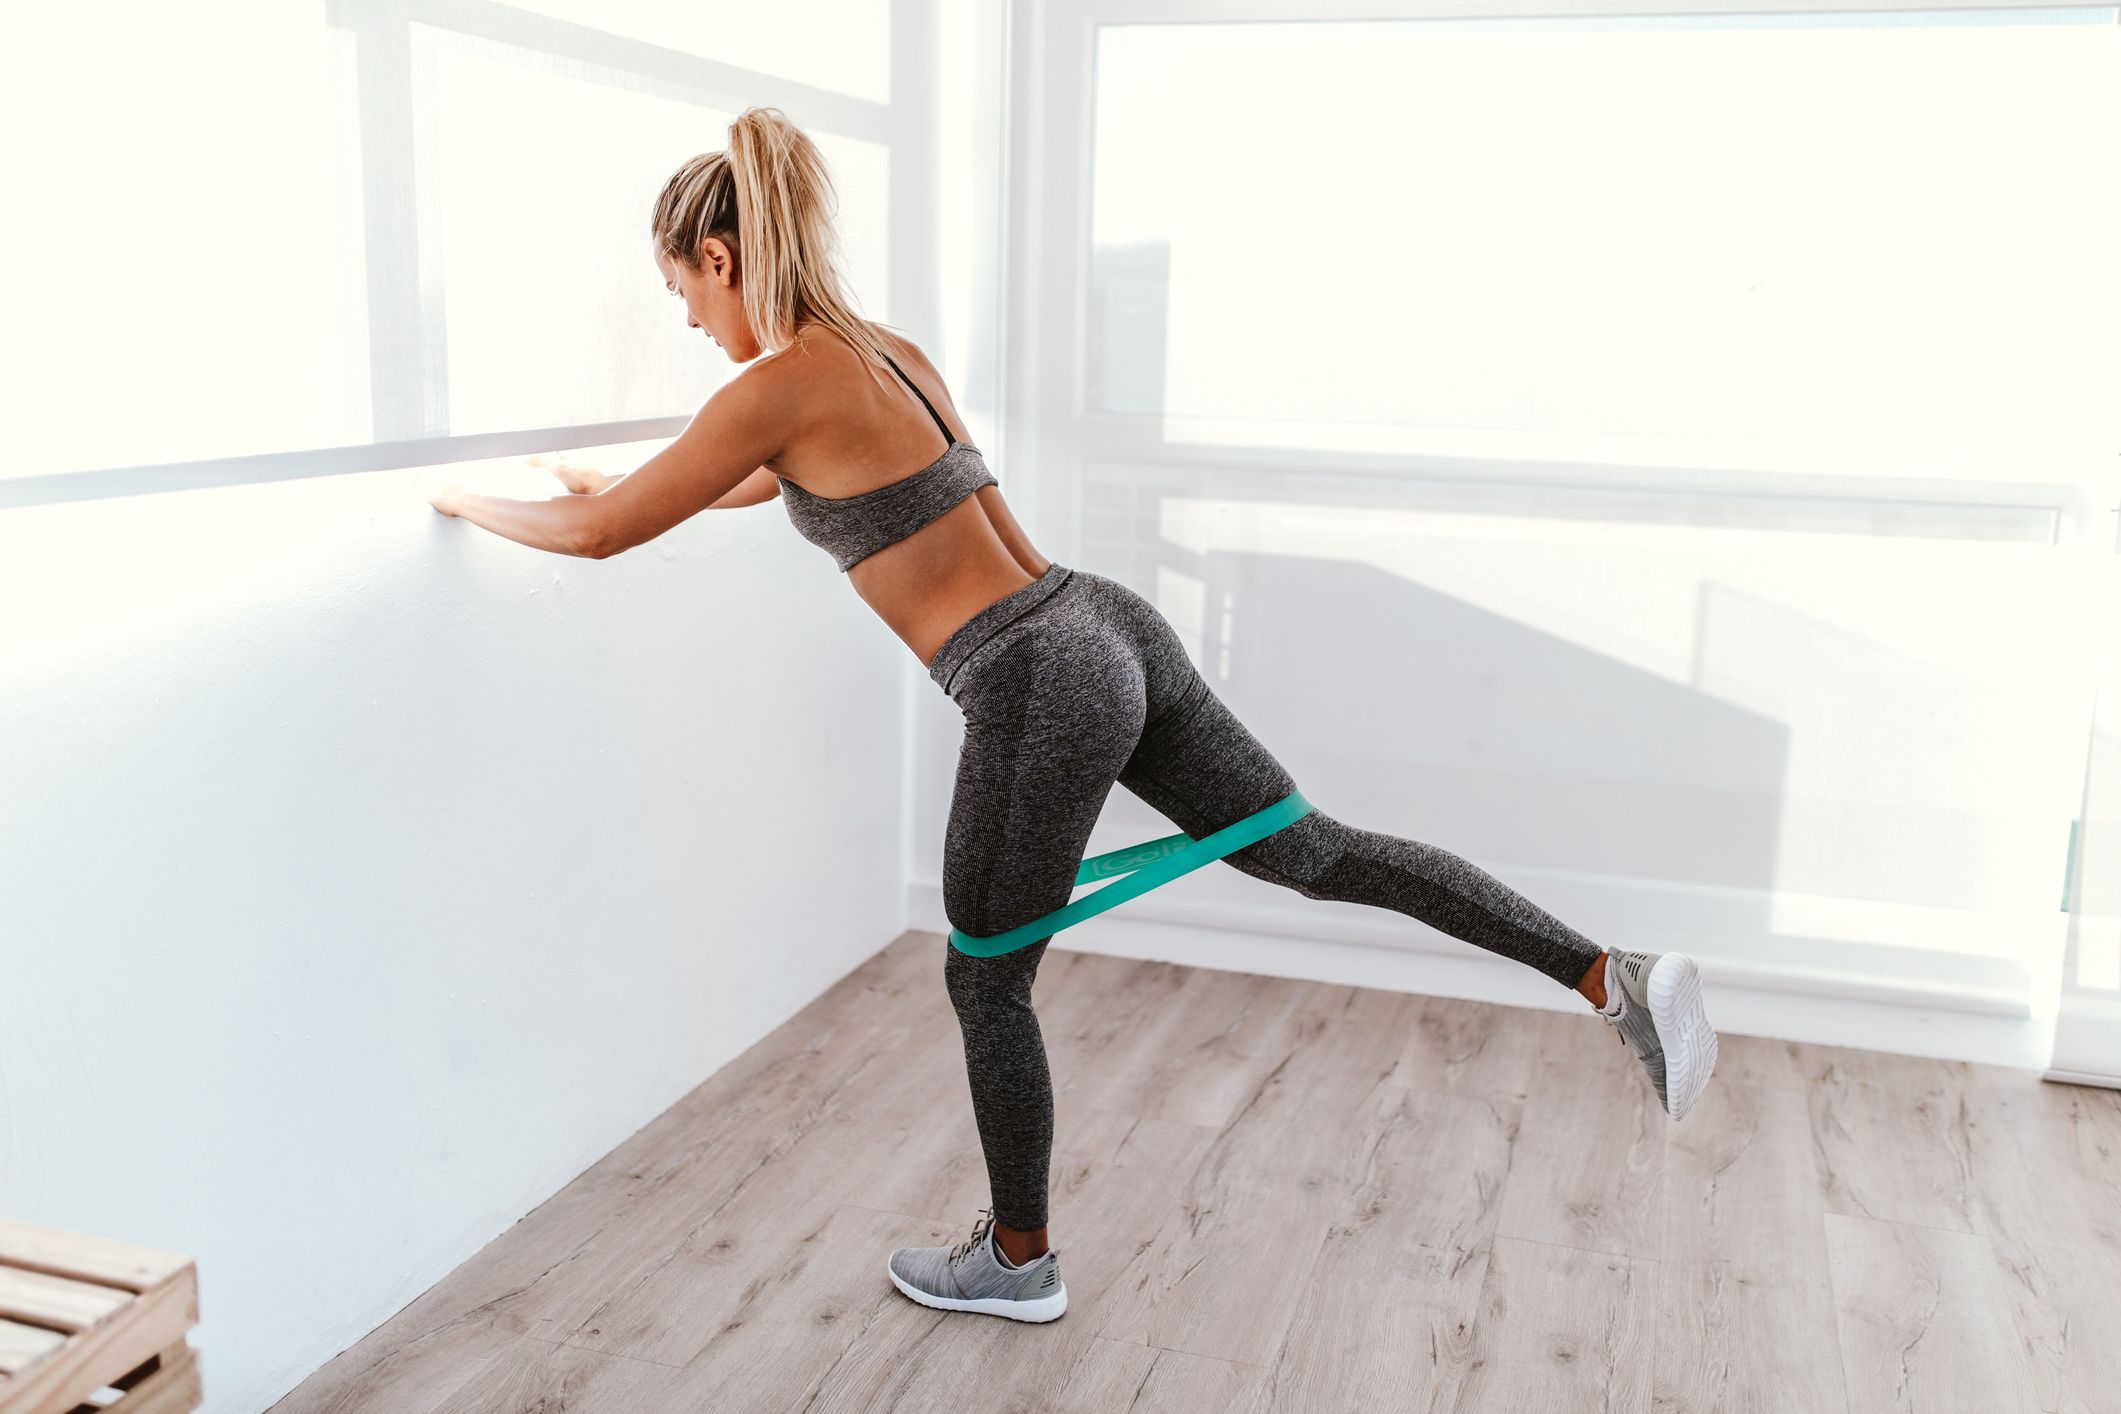 15 best resistance band exercises to take your home workout to the next level